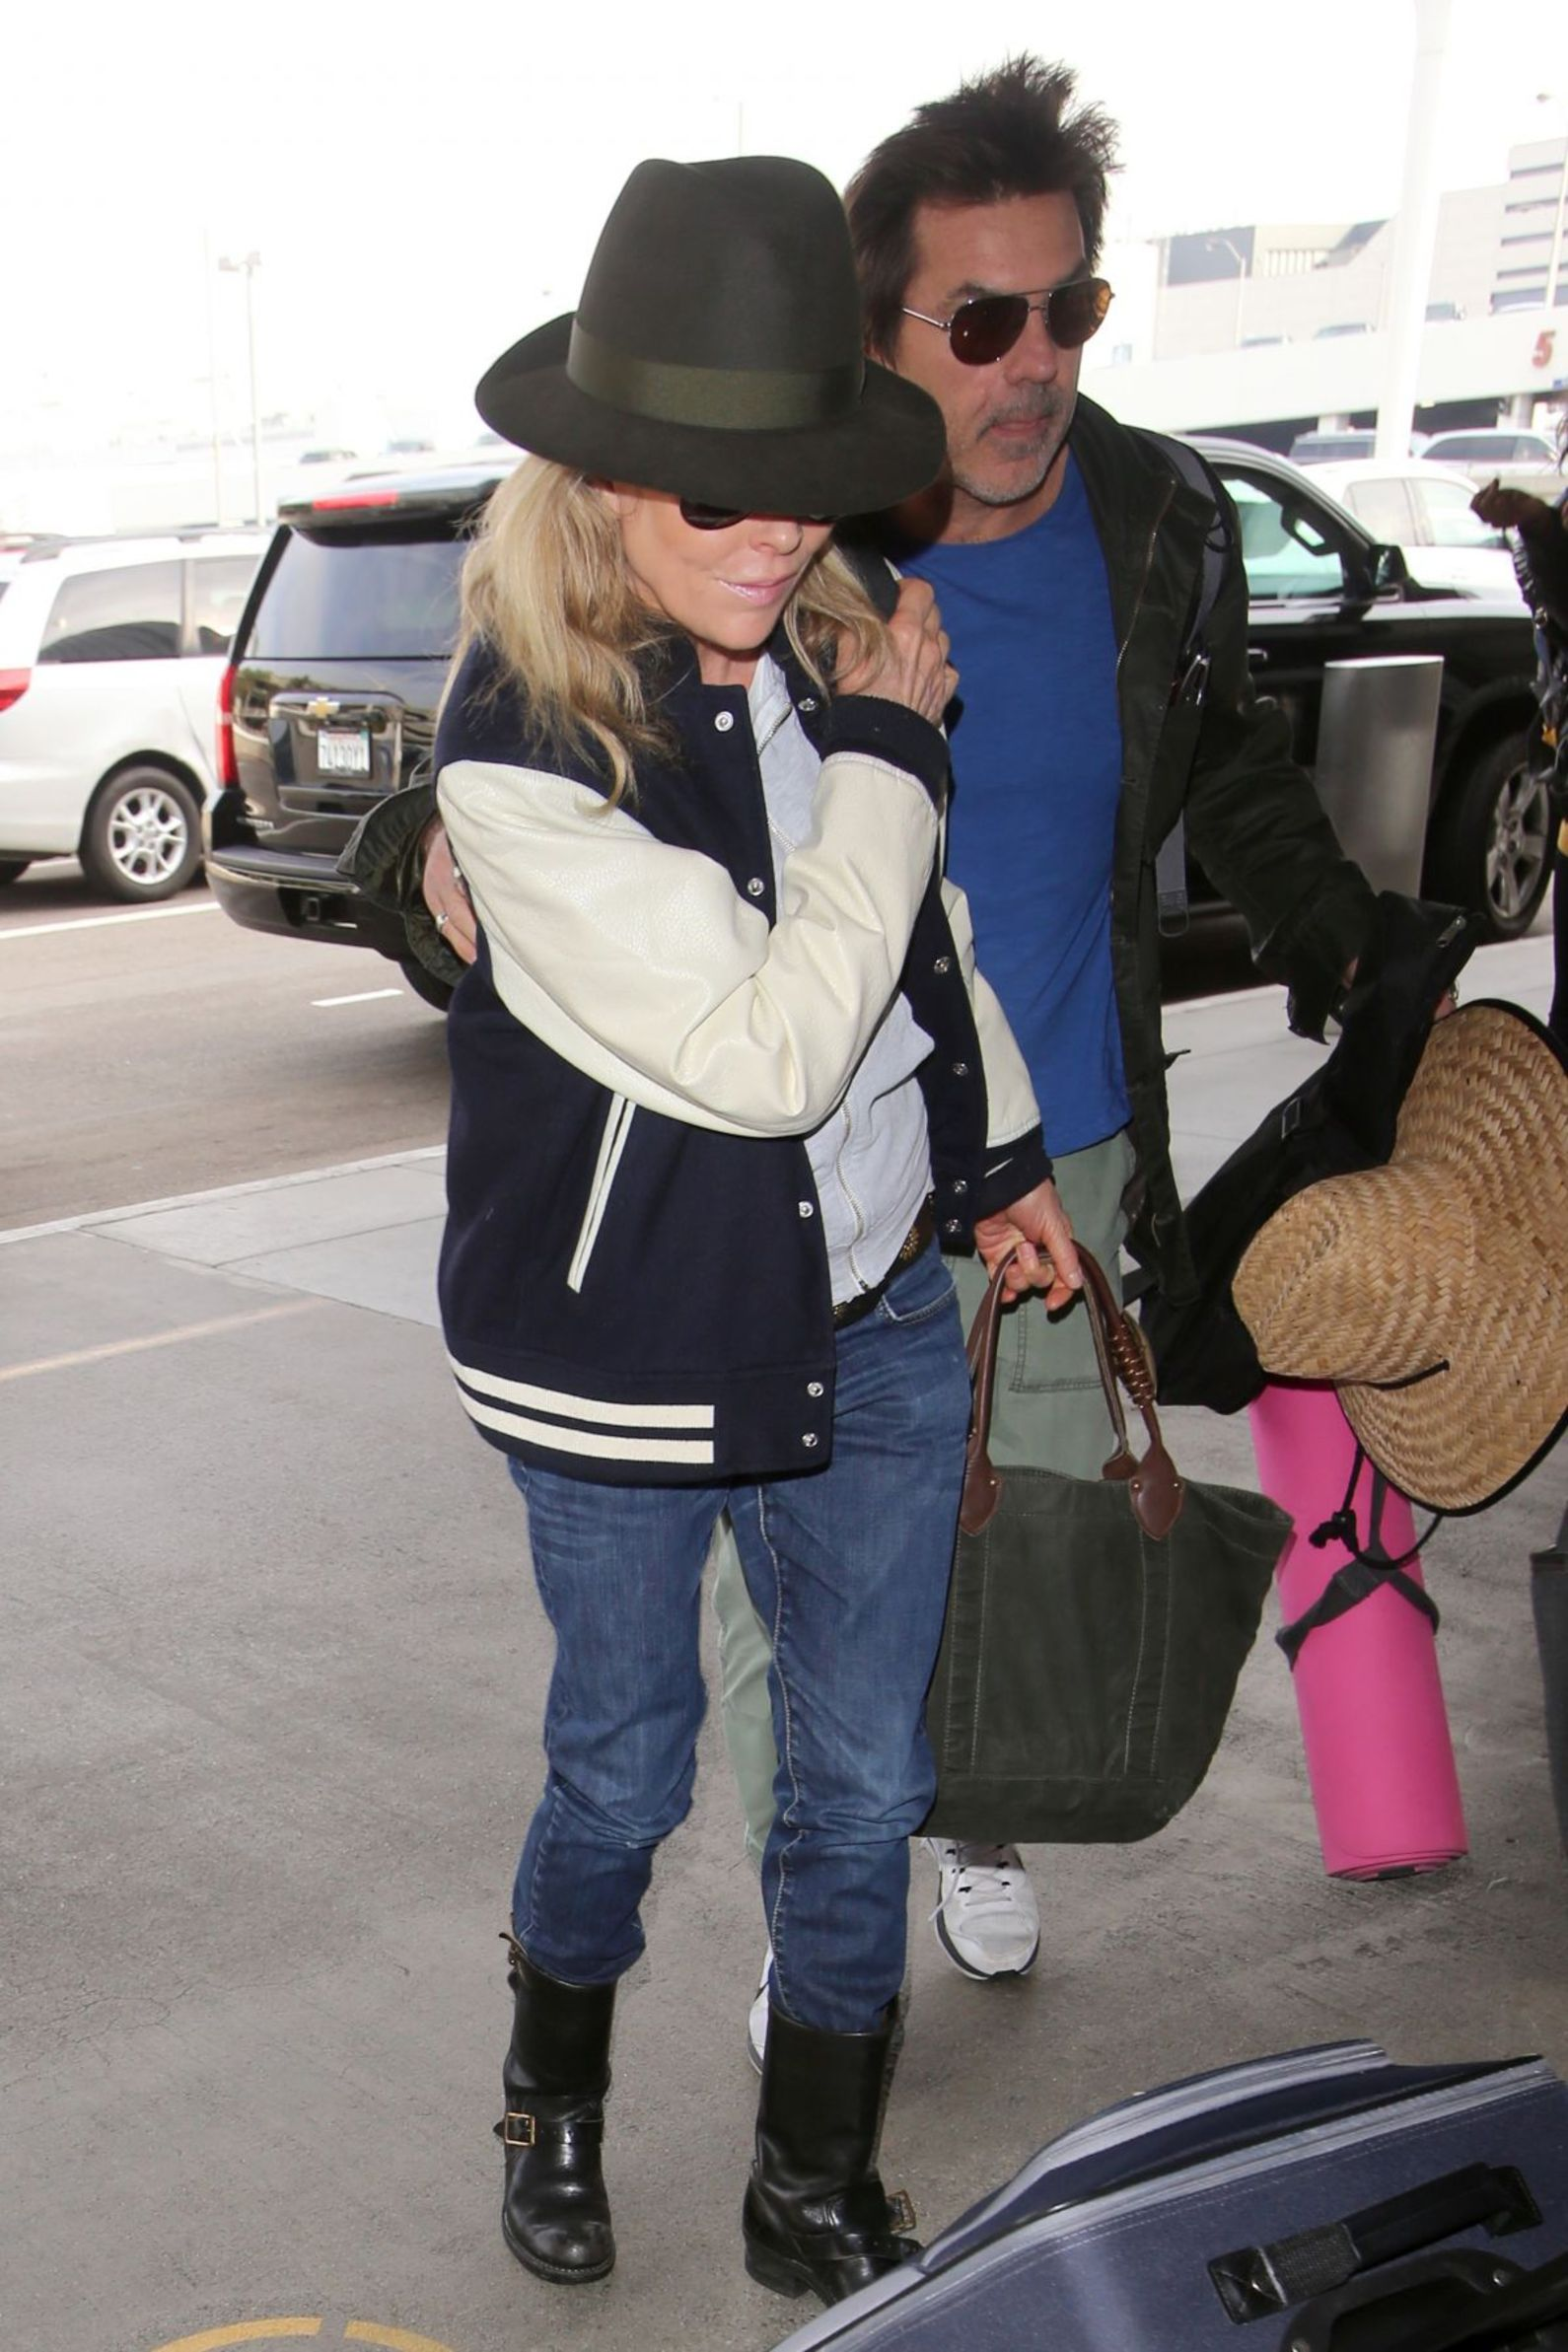 KKim Basinger at LAX airport December 05th 2016